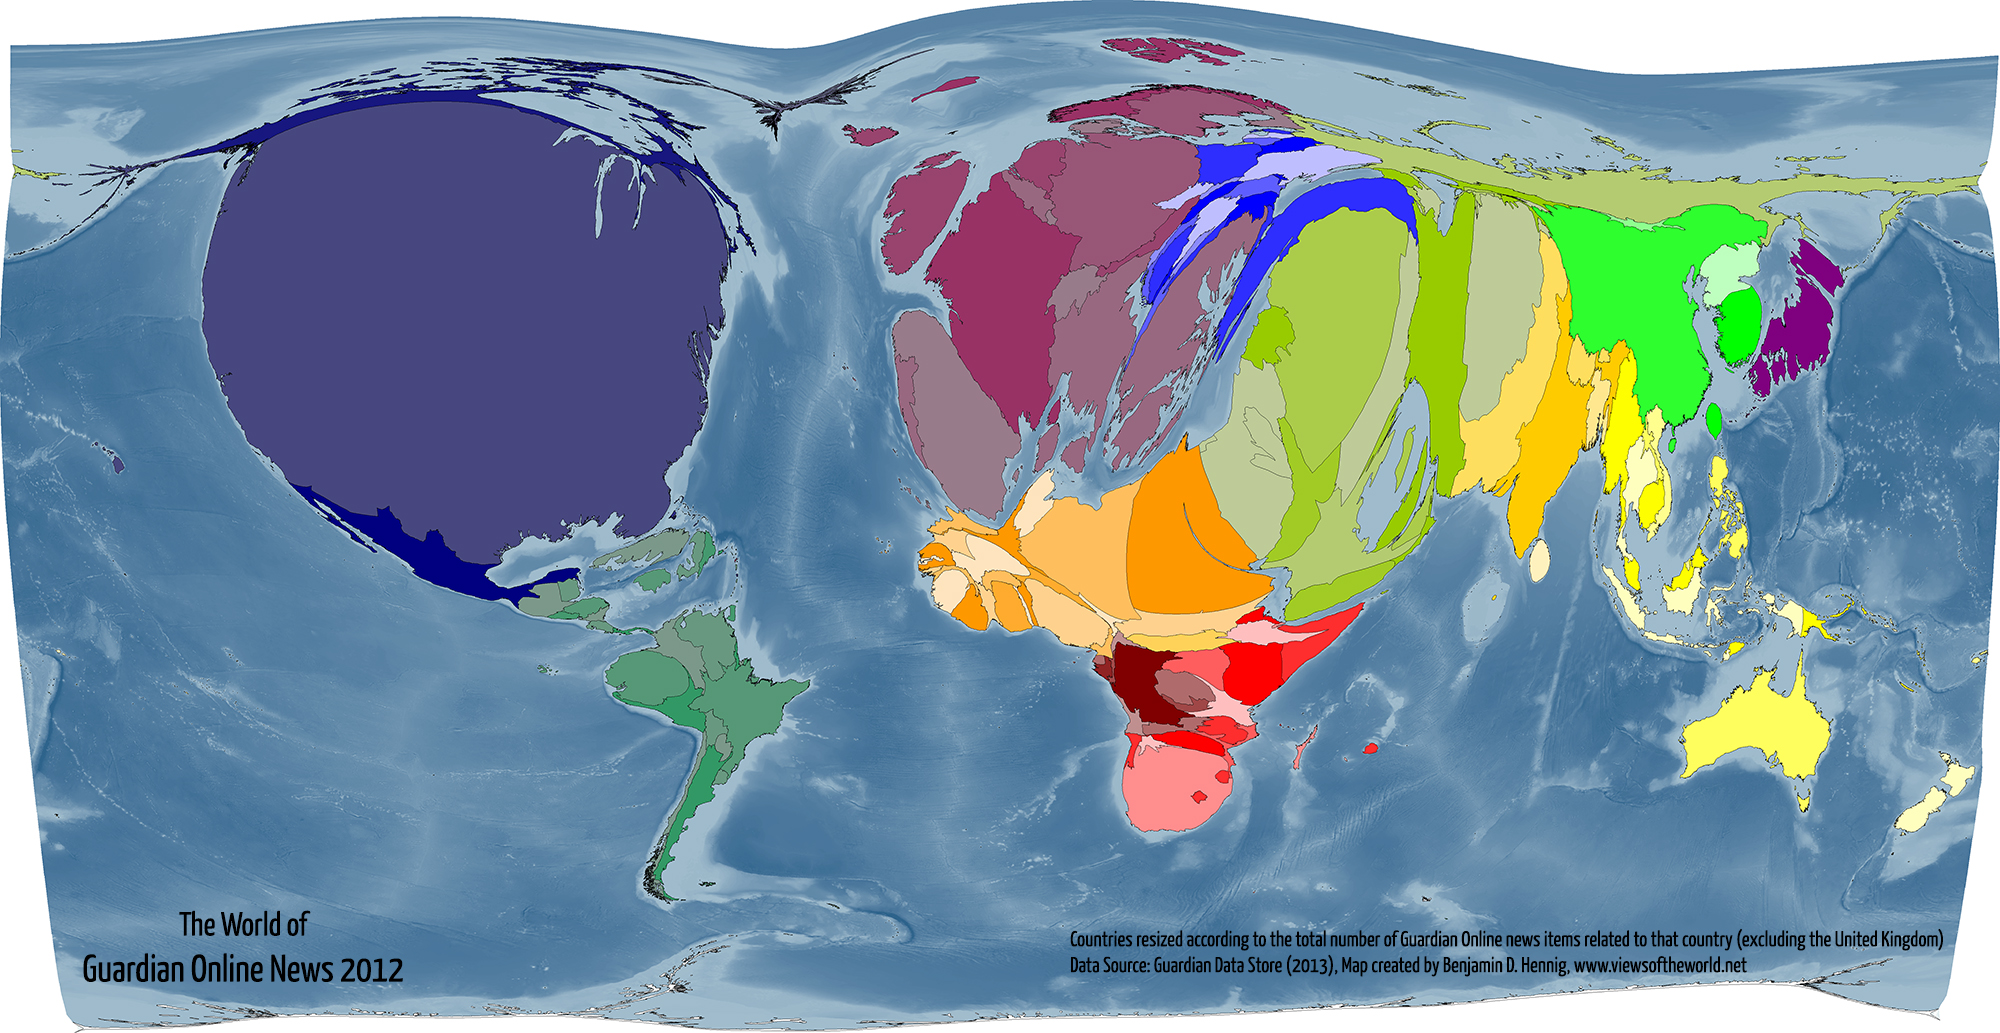 Map / Cartogram of Global Guardian Online News Coverage 2012